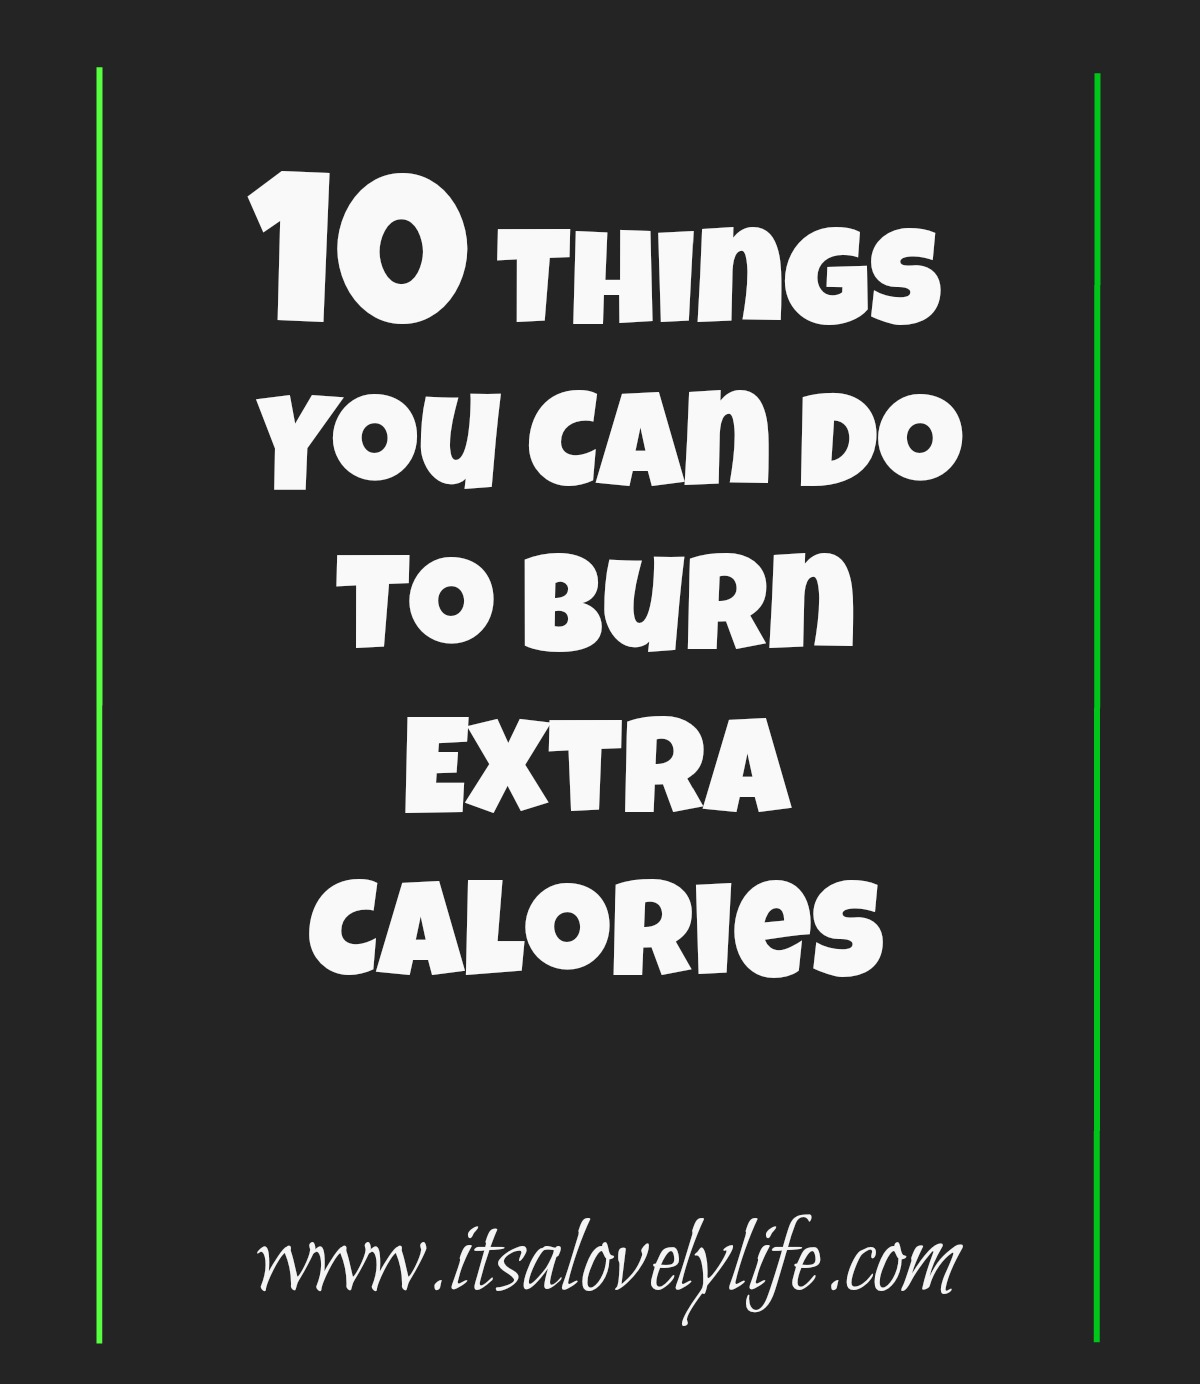 Things you can do to burn extra calories